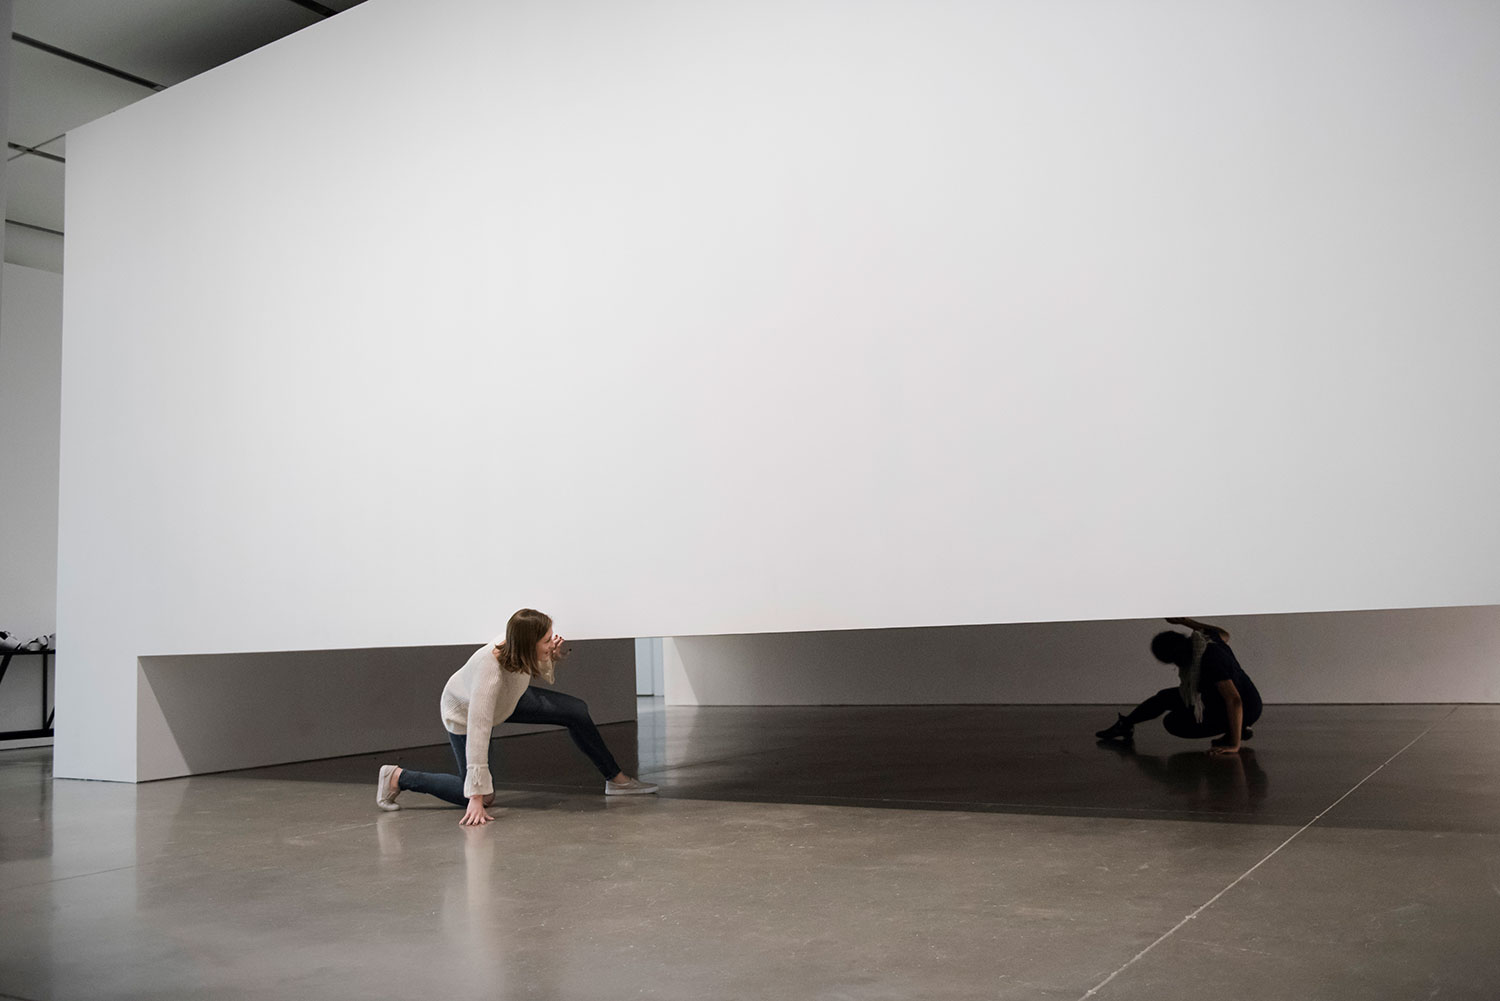 William Forsythe, A Volume, within Which it Is Not Possible for Certain Classes of Action to Arise, 2015. Courtesy of the artist. Photography by Liza Voll © William Forsythe